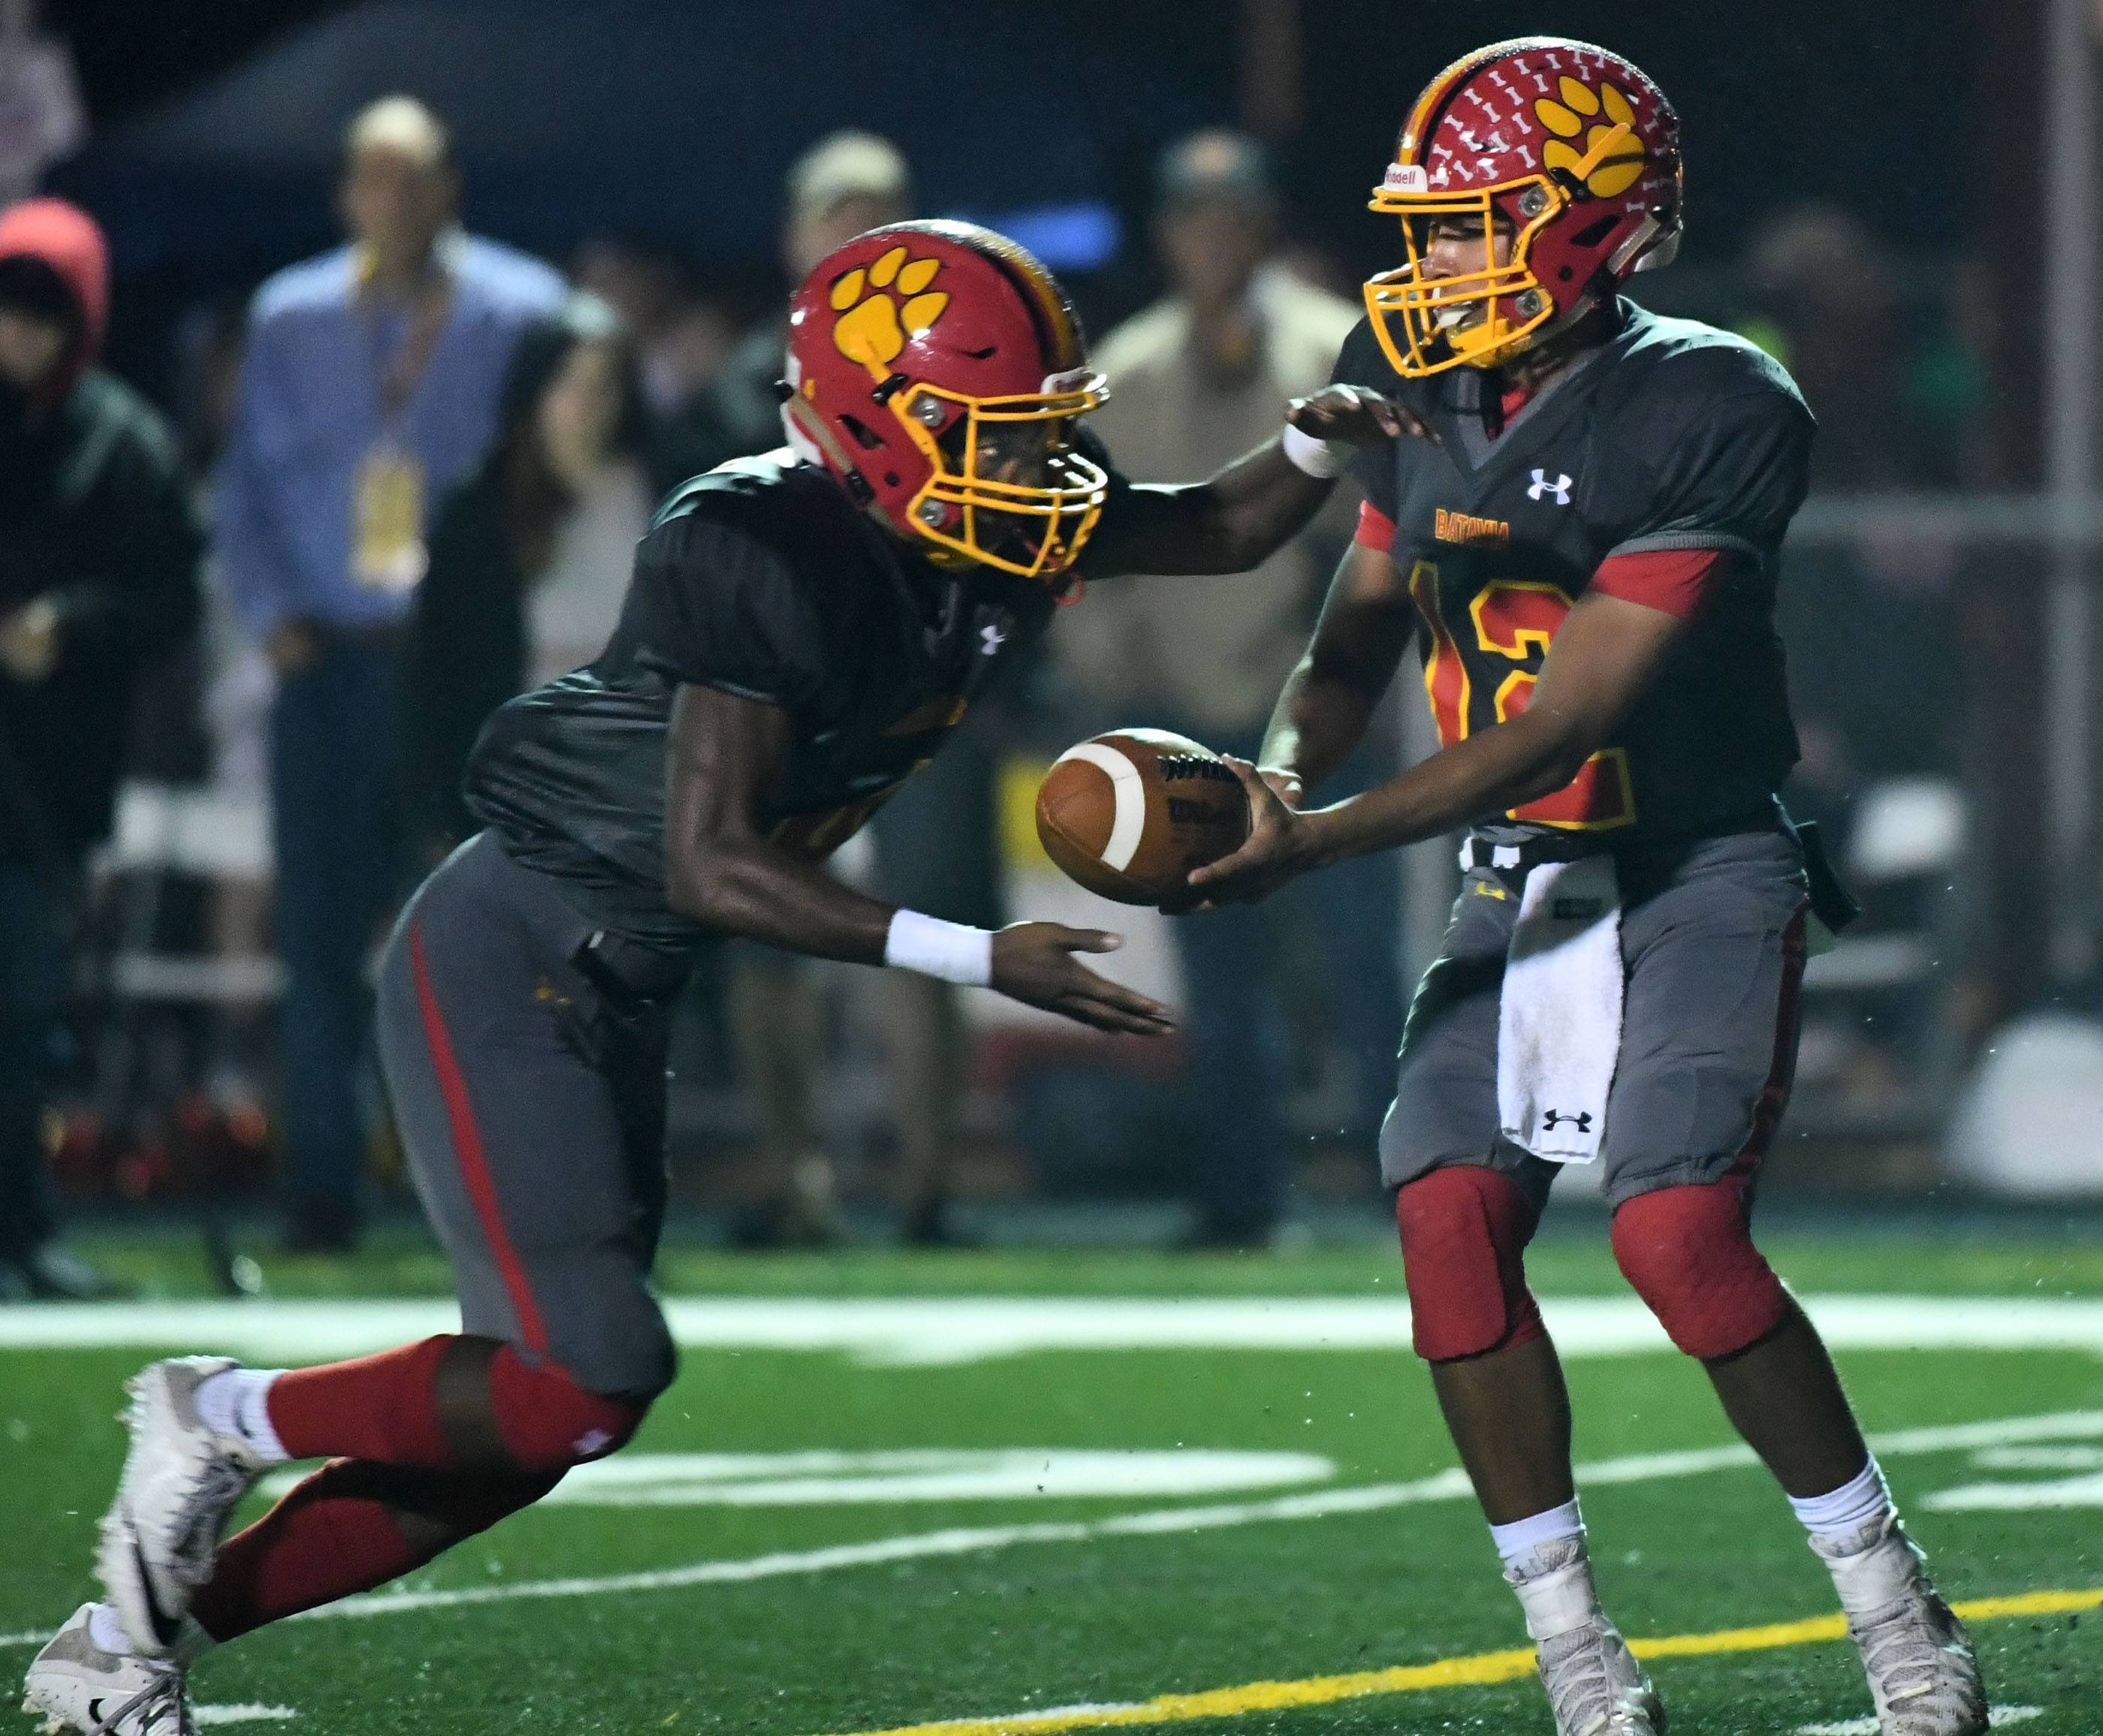 Batavia's Riley Cooper hands off to Reggie Phillips, who takes it to the one yard line against South Elgin in the first half Friday in Batavia.